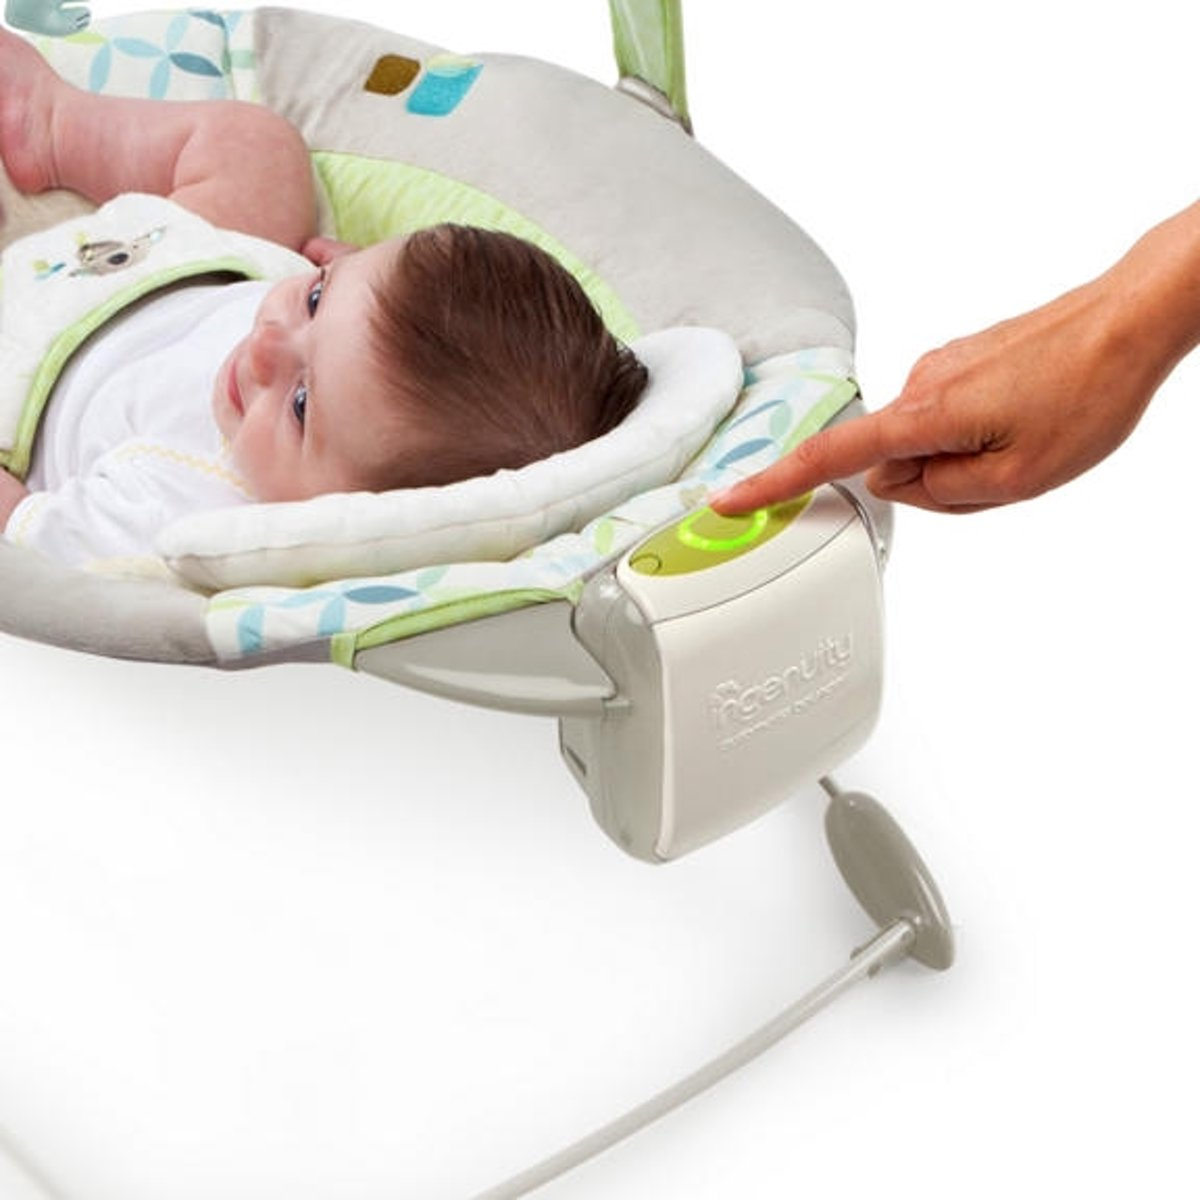 Smartbounce Automatic Bouncer Brighton Bright Starts Ingenuity Winslow